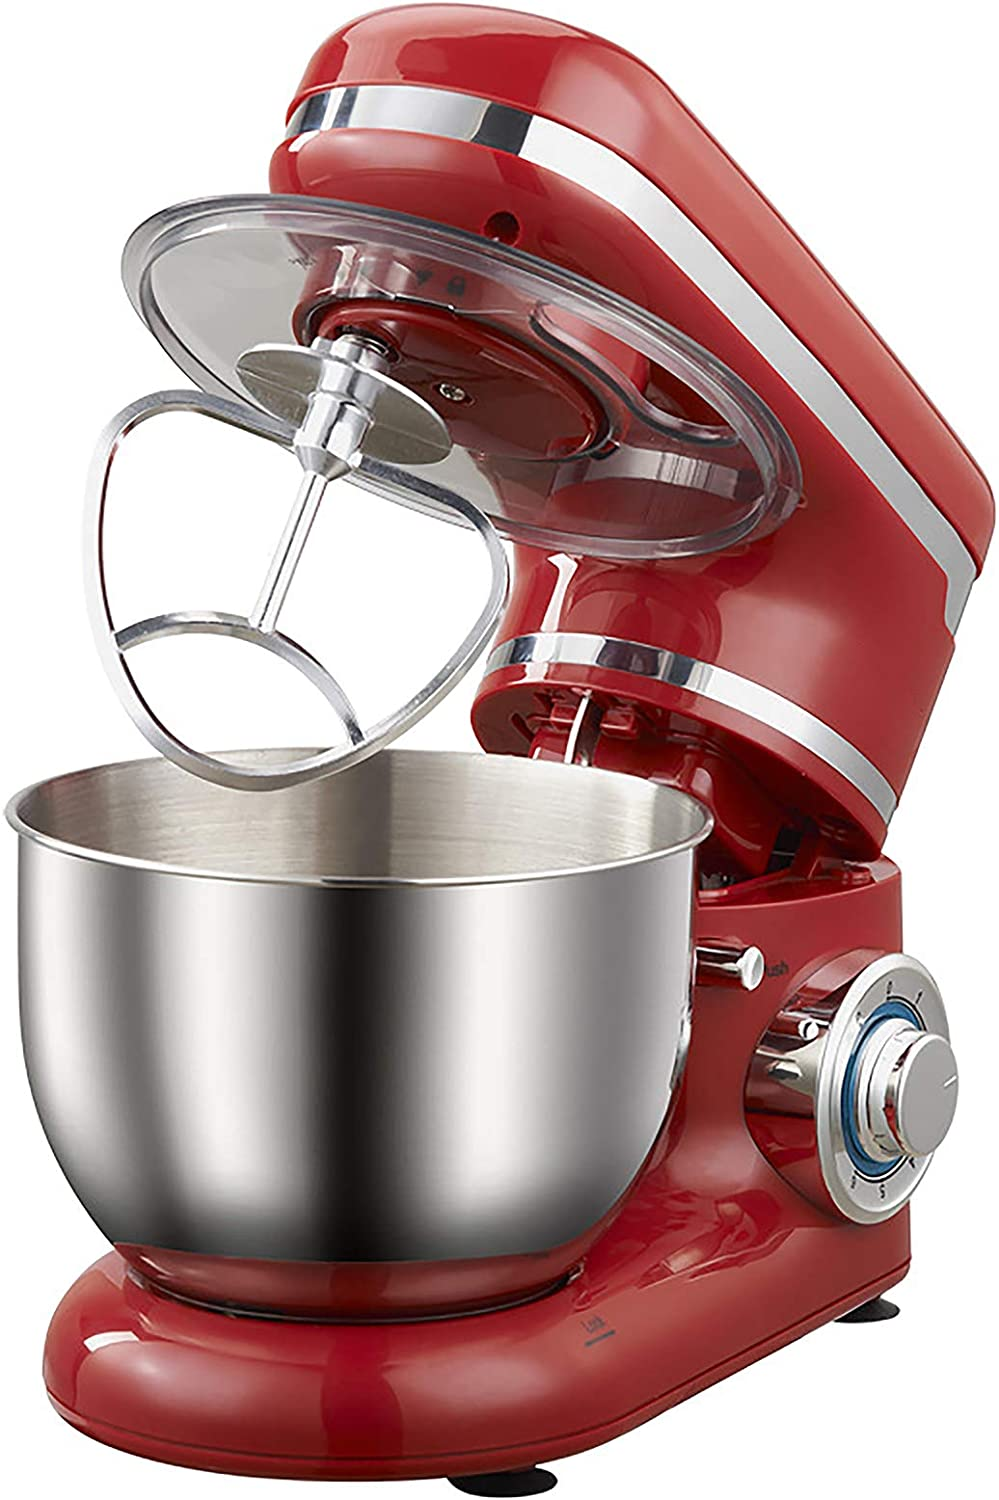 QWEASDF Tilt-Head Stand Mixer, Food Processor, Dough Hook, Flat Beater, Wire Whip 1200W Stainless Steel Bowl Planetary Mixing Action 6 Speeds Multifunctional